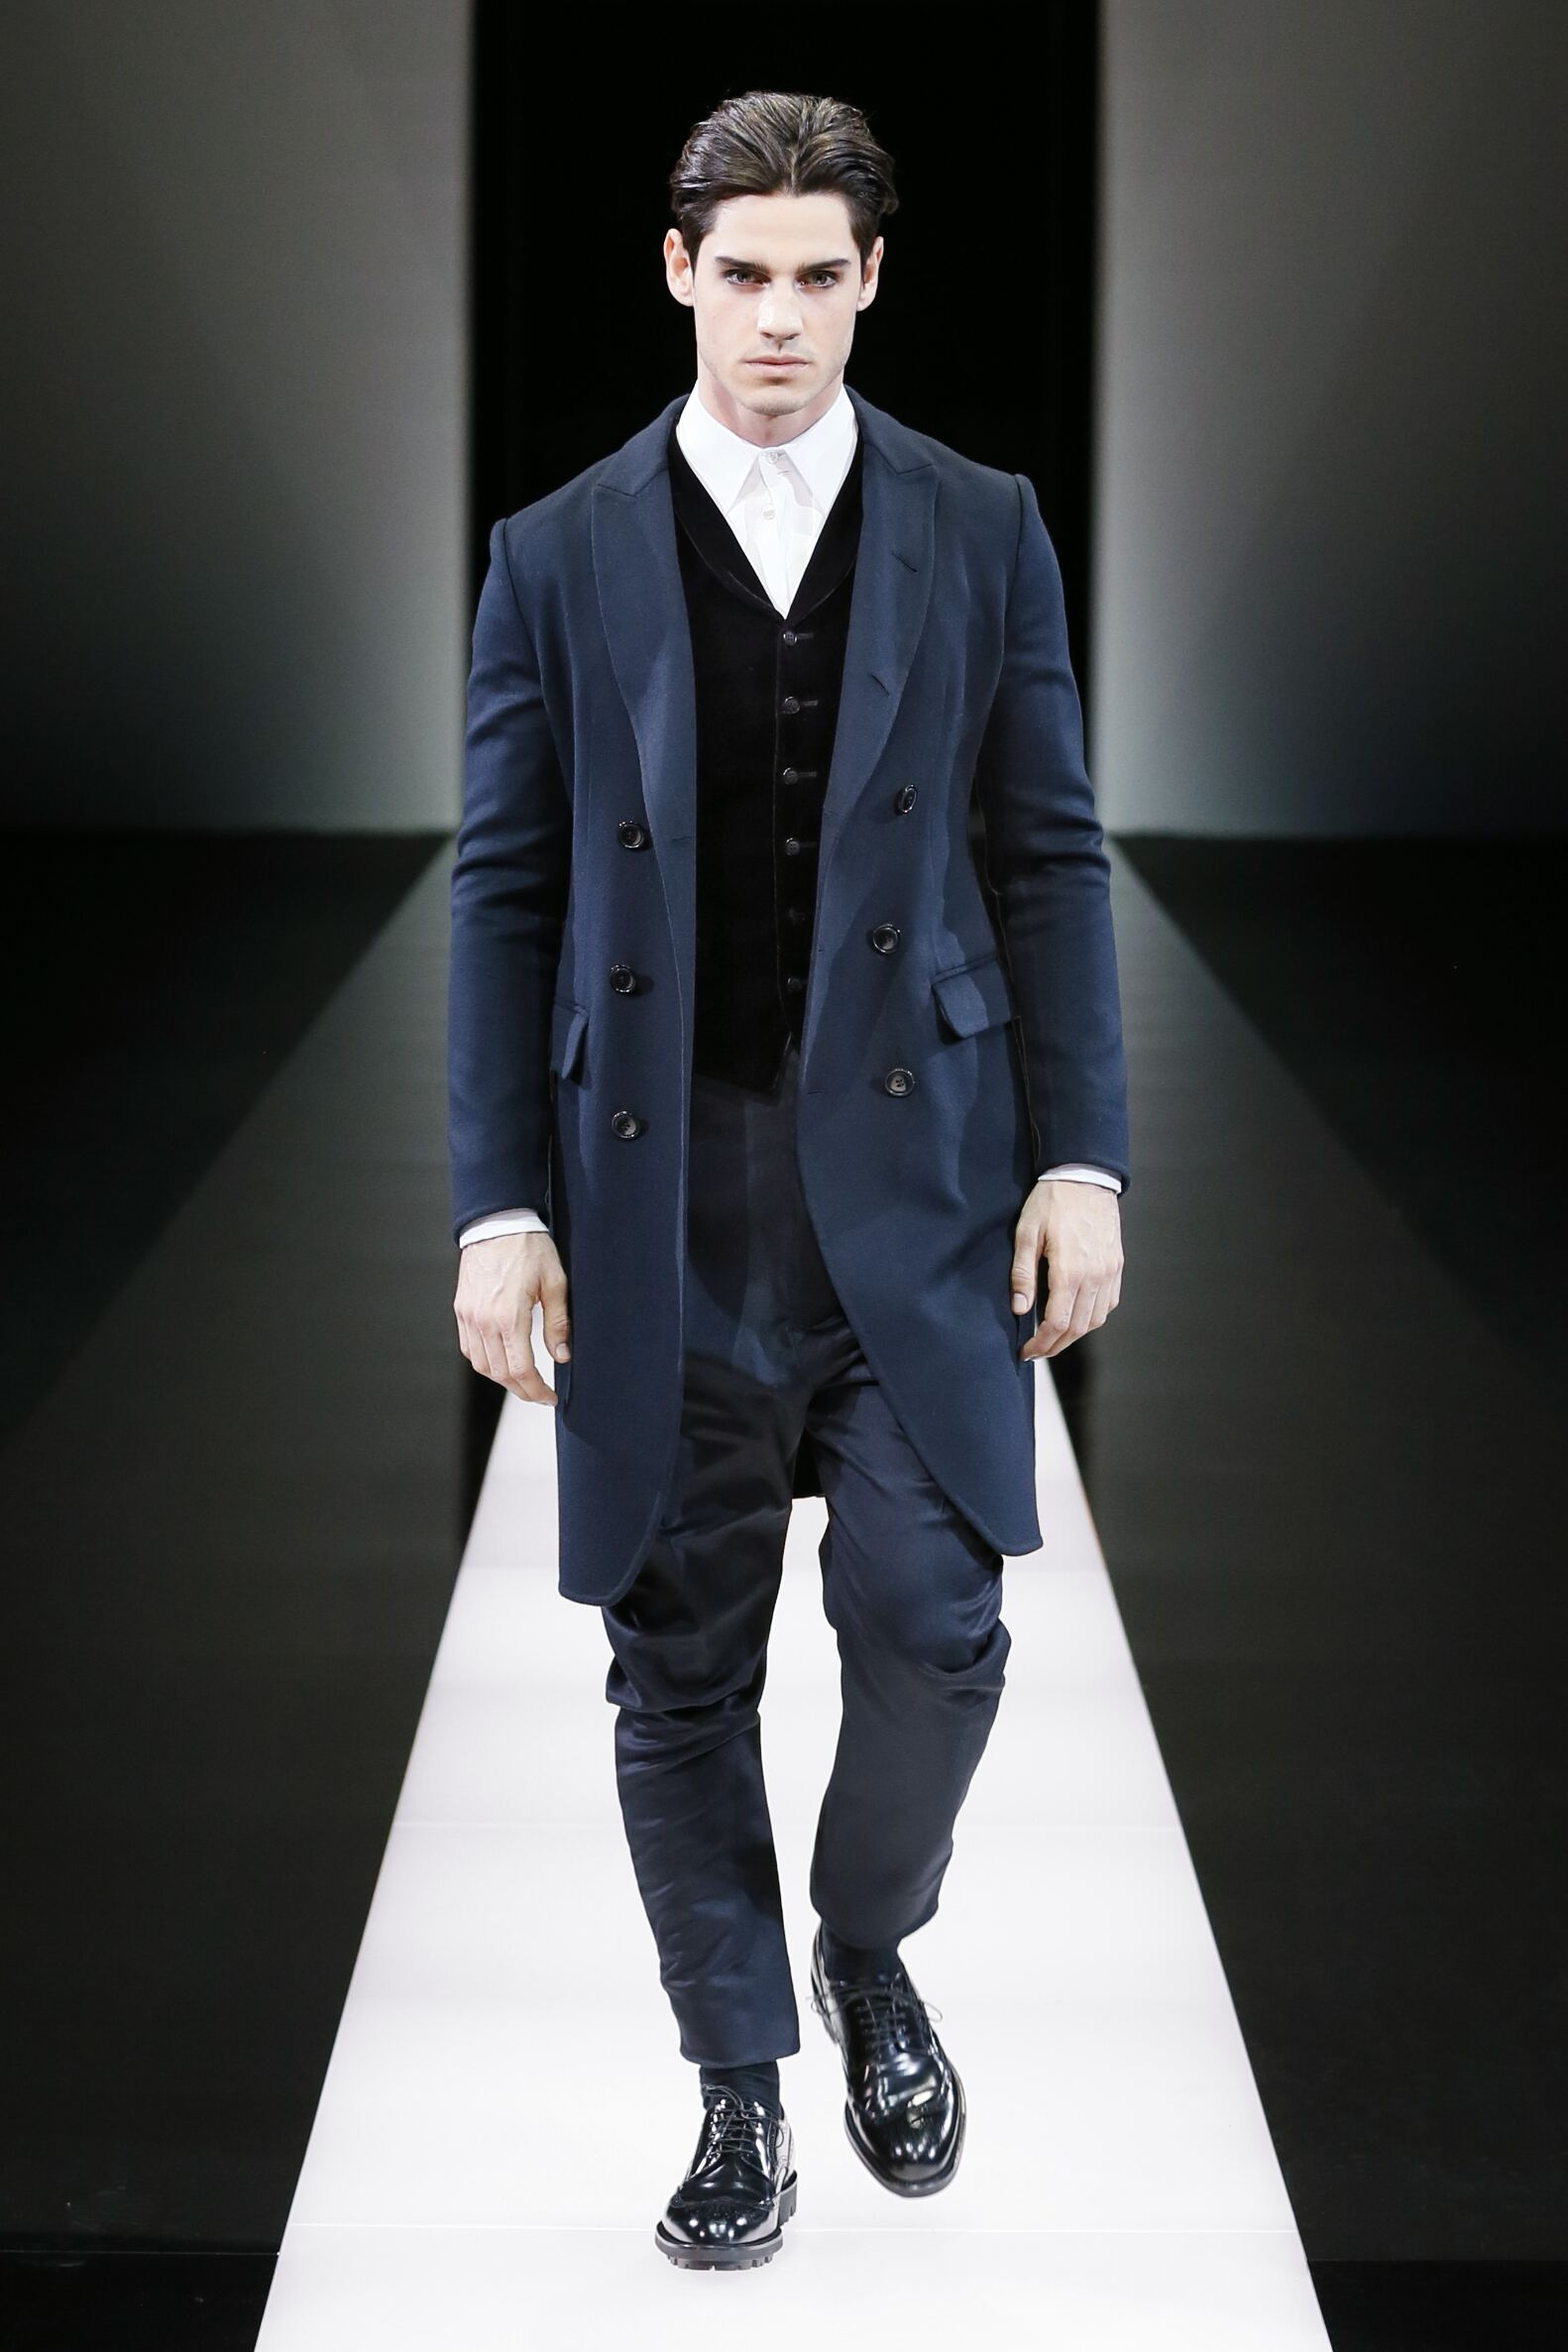 2015 2016 Winter Fashion Trends Giorgio Armani Collection